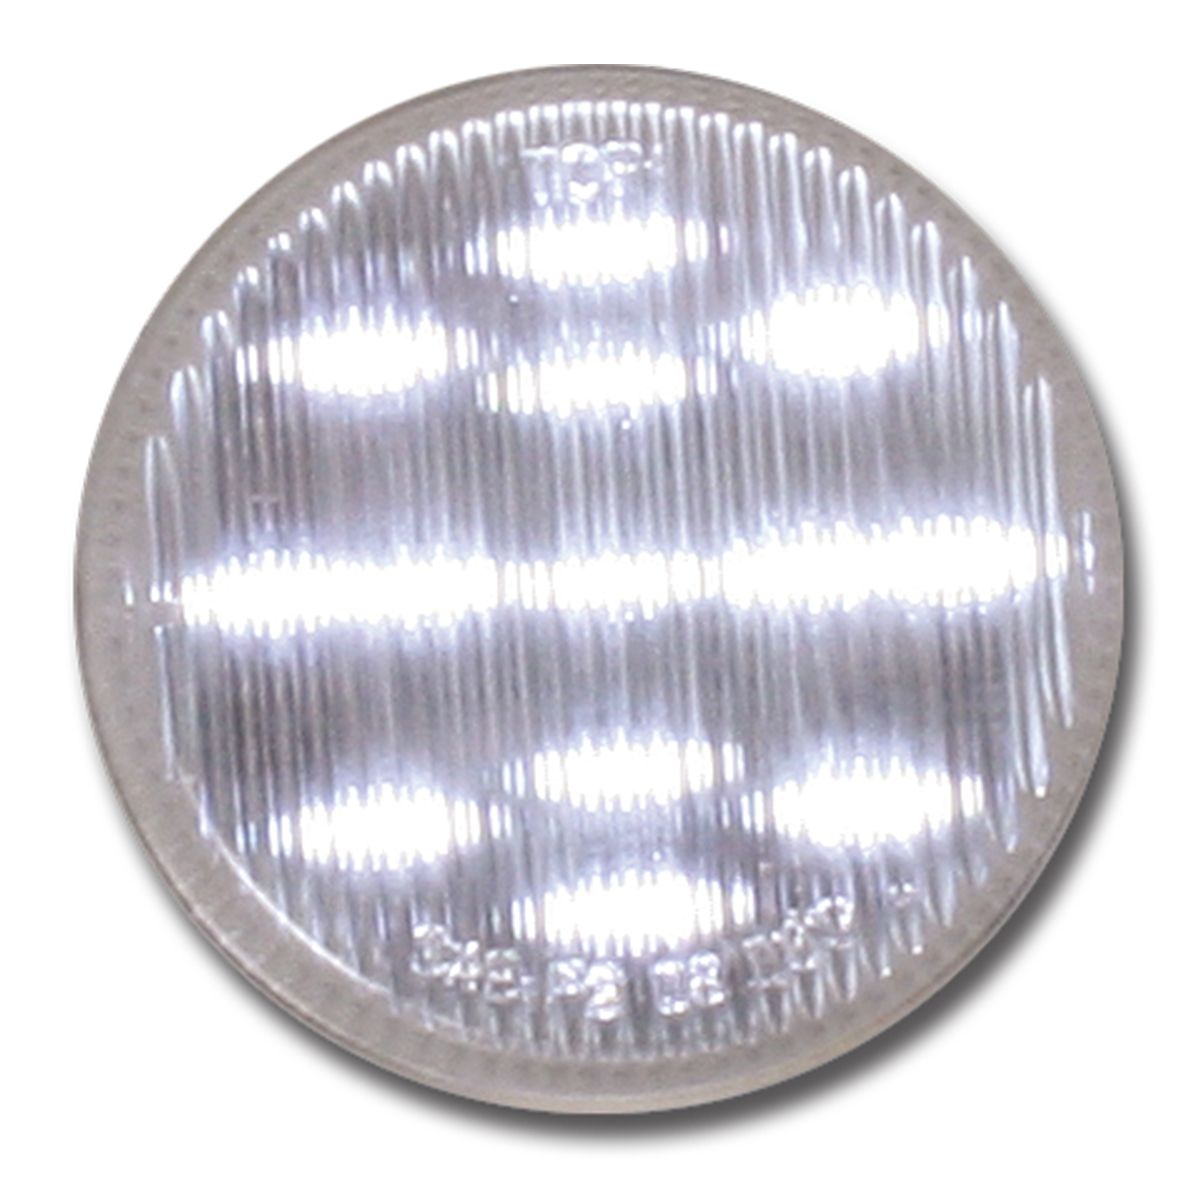 "79319 2-1/2"" Round Fleet Marker Light"